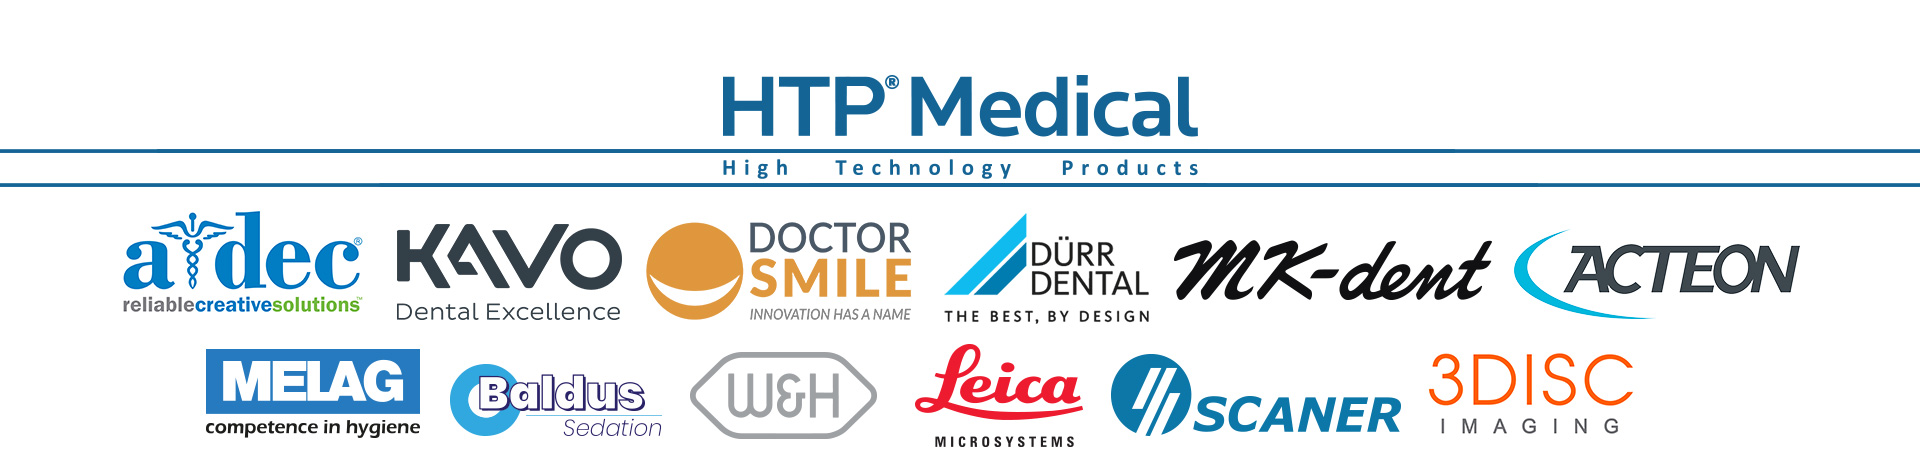 HTP Medical - Producatori